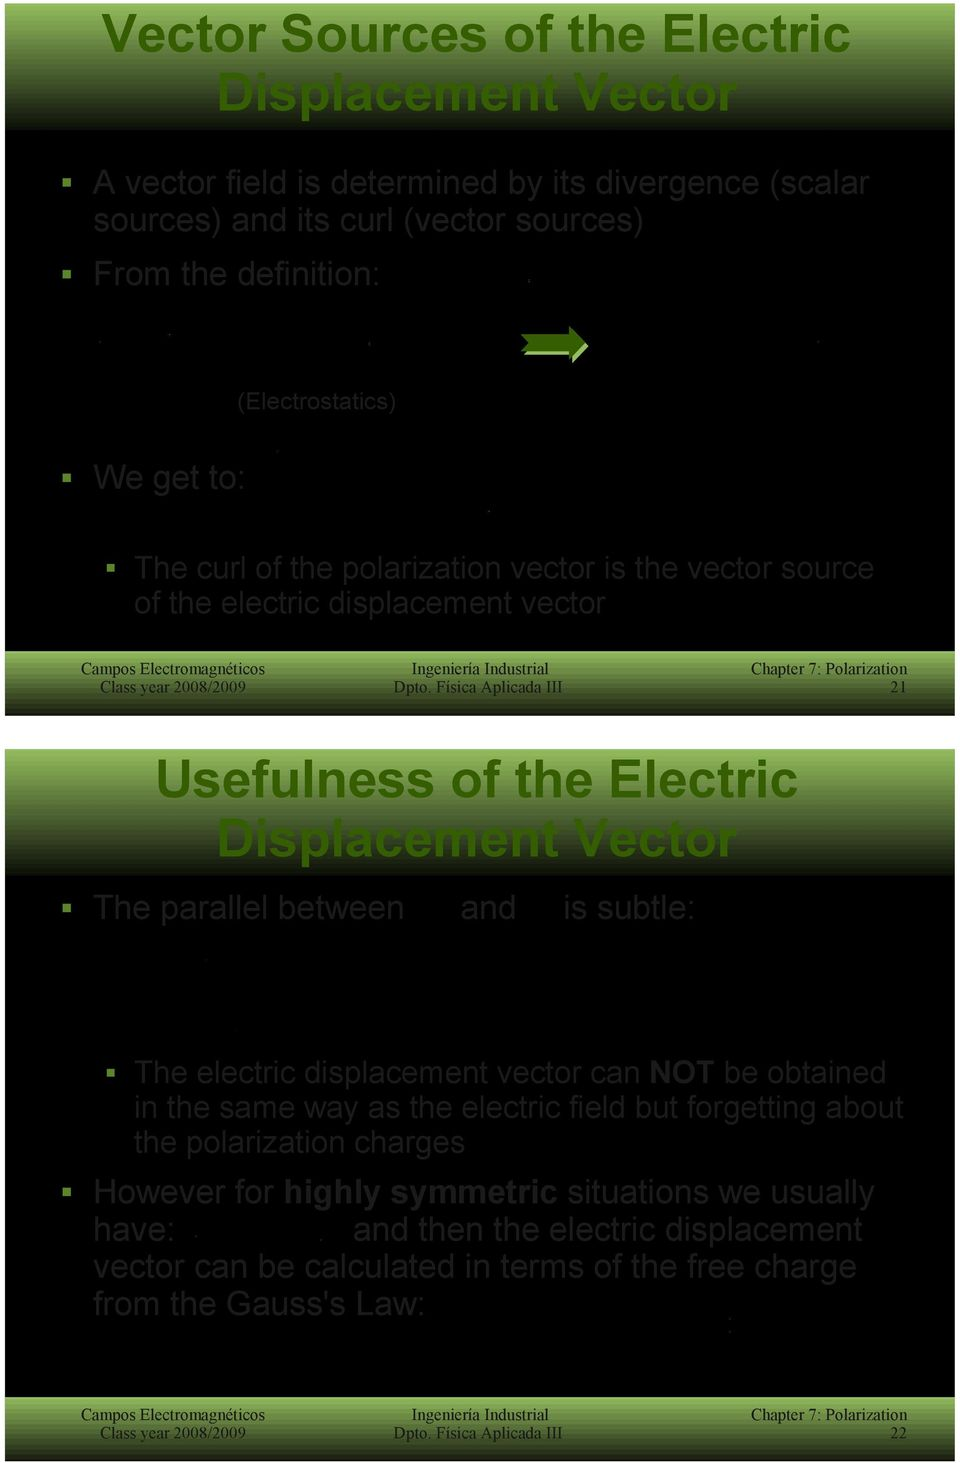 Vector The parallel between and is subtle: The electric displacement vector can NOT be obtained in the same way as the electric field but forgetting about the